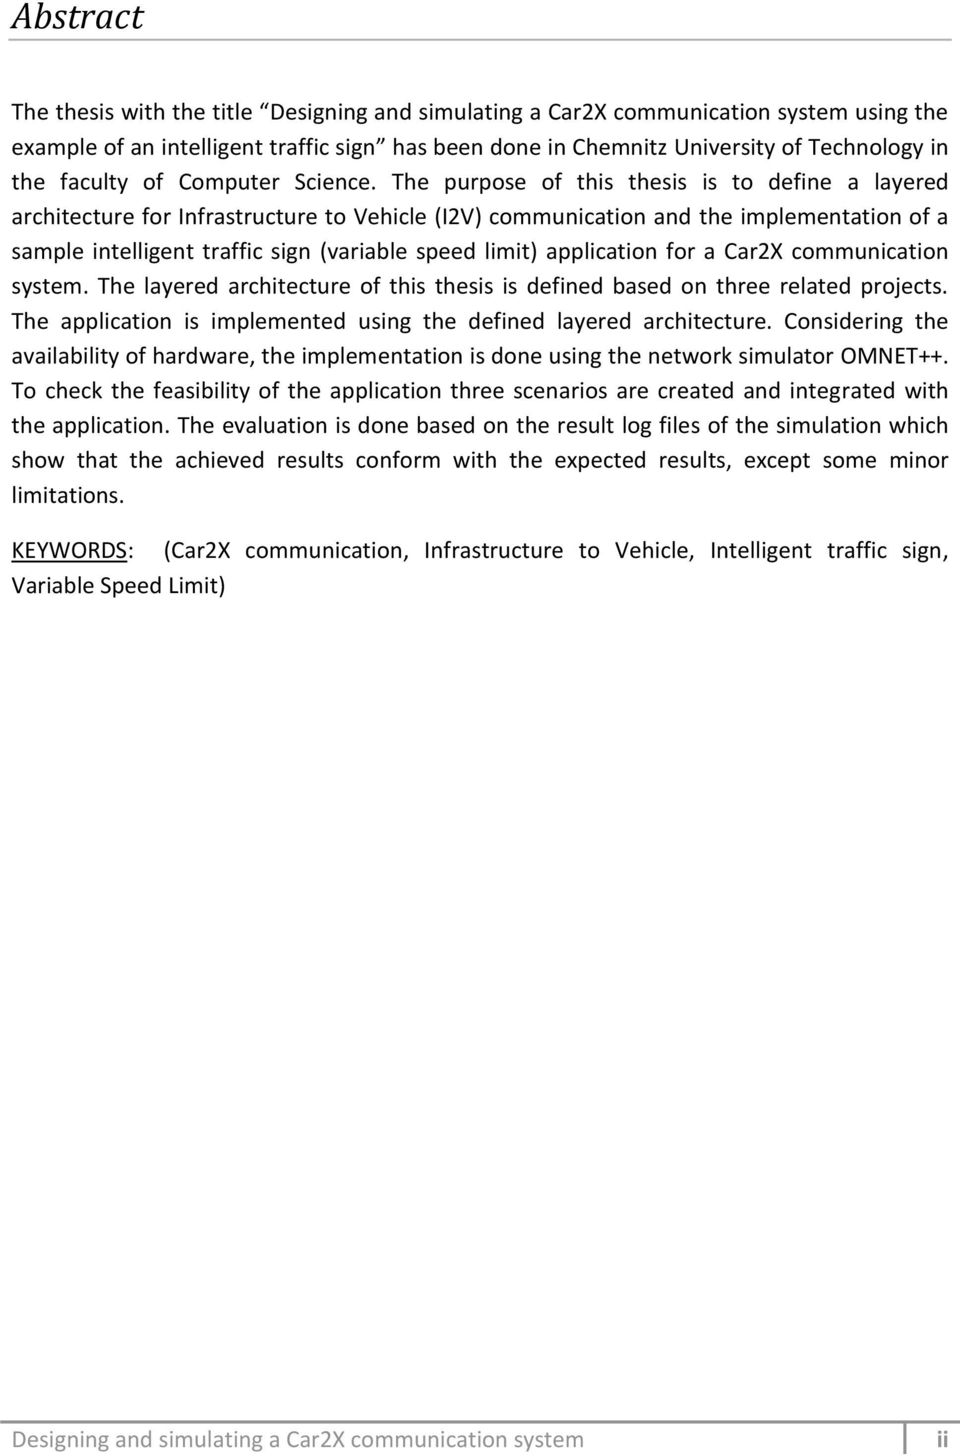 The purpose of this thesis is to define a layered architecture for Infrastructure to Vehicle (I2V) communication and the implementation of a sample intelligent traffic sign (variable speed limit)